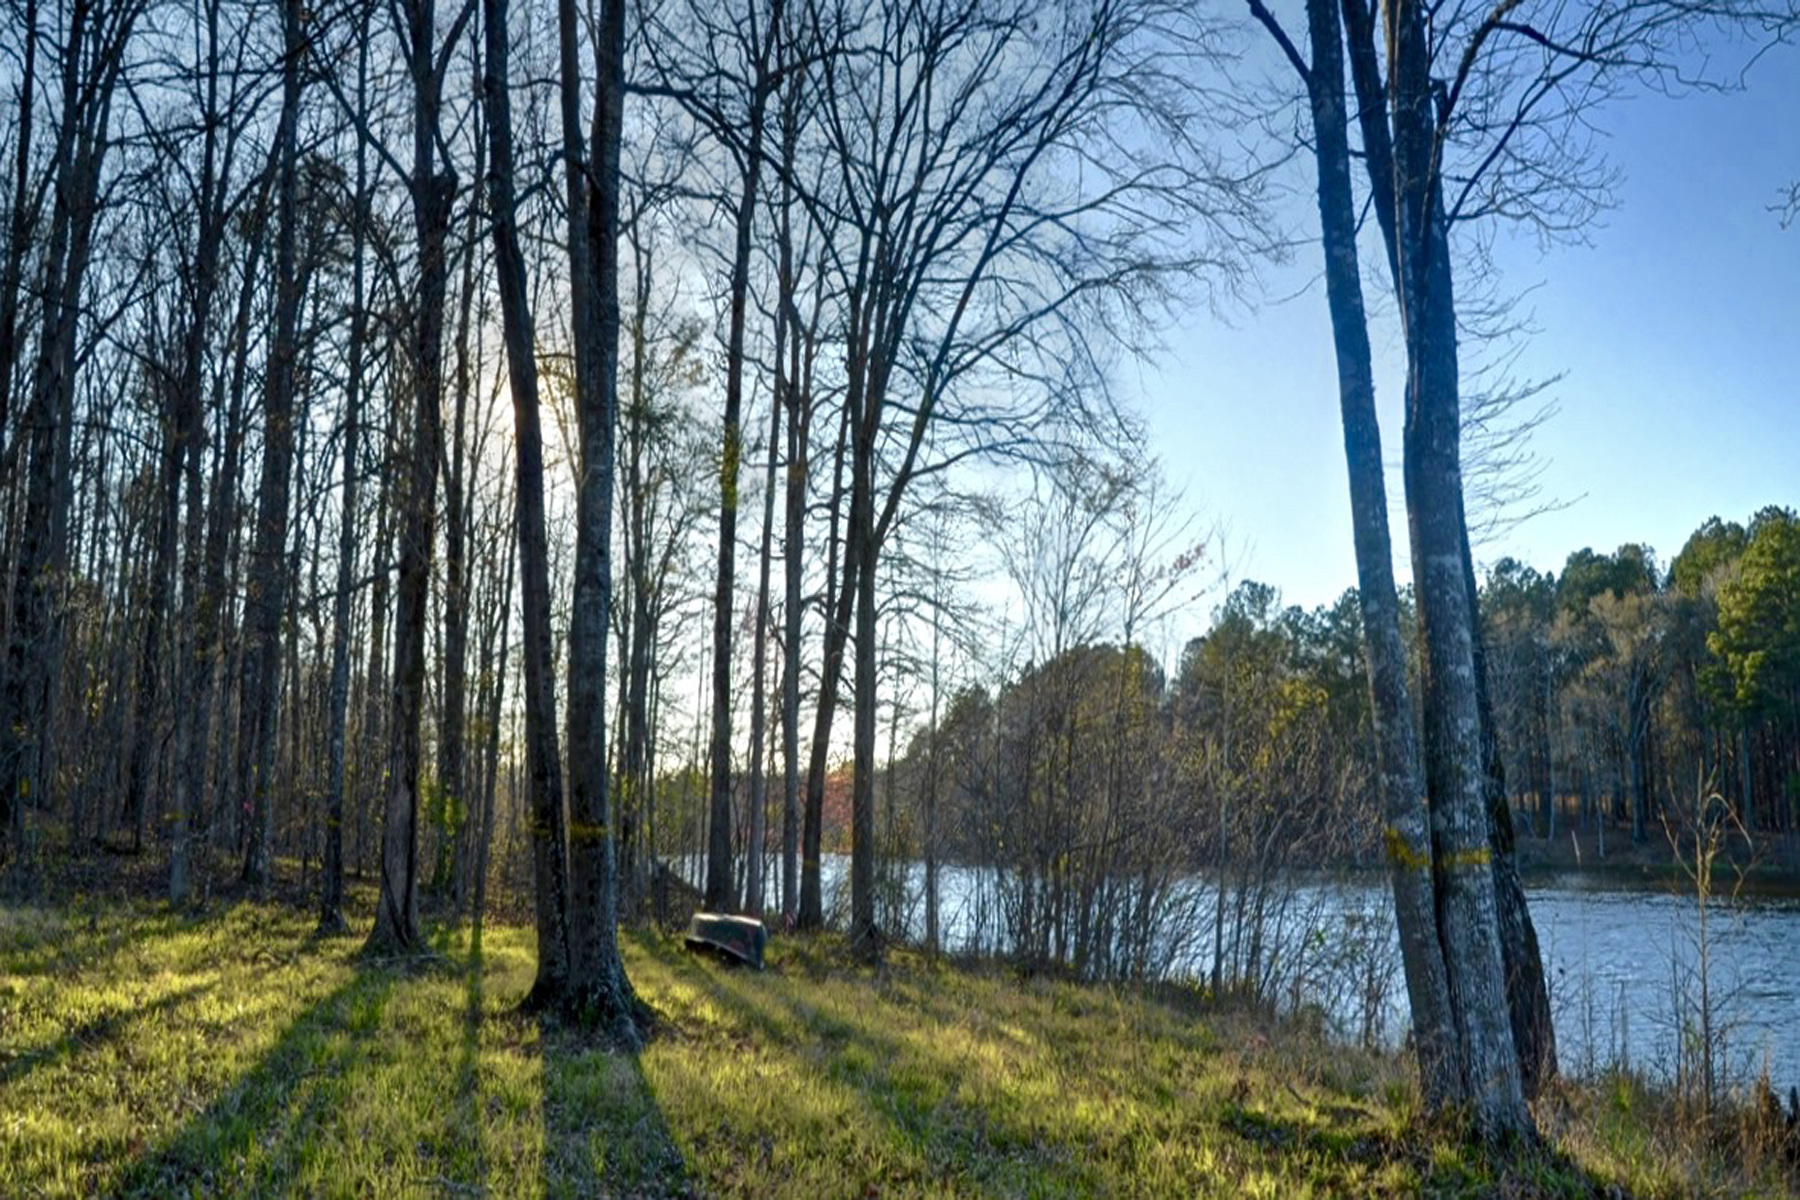 Đất đai vì Bán tại Beautiful 6.16 Acre Lakefront Lot In Sought After South Fayette 165 Village Lake Court Brooks, Georgia 30205 Hoa Kỳ